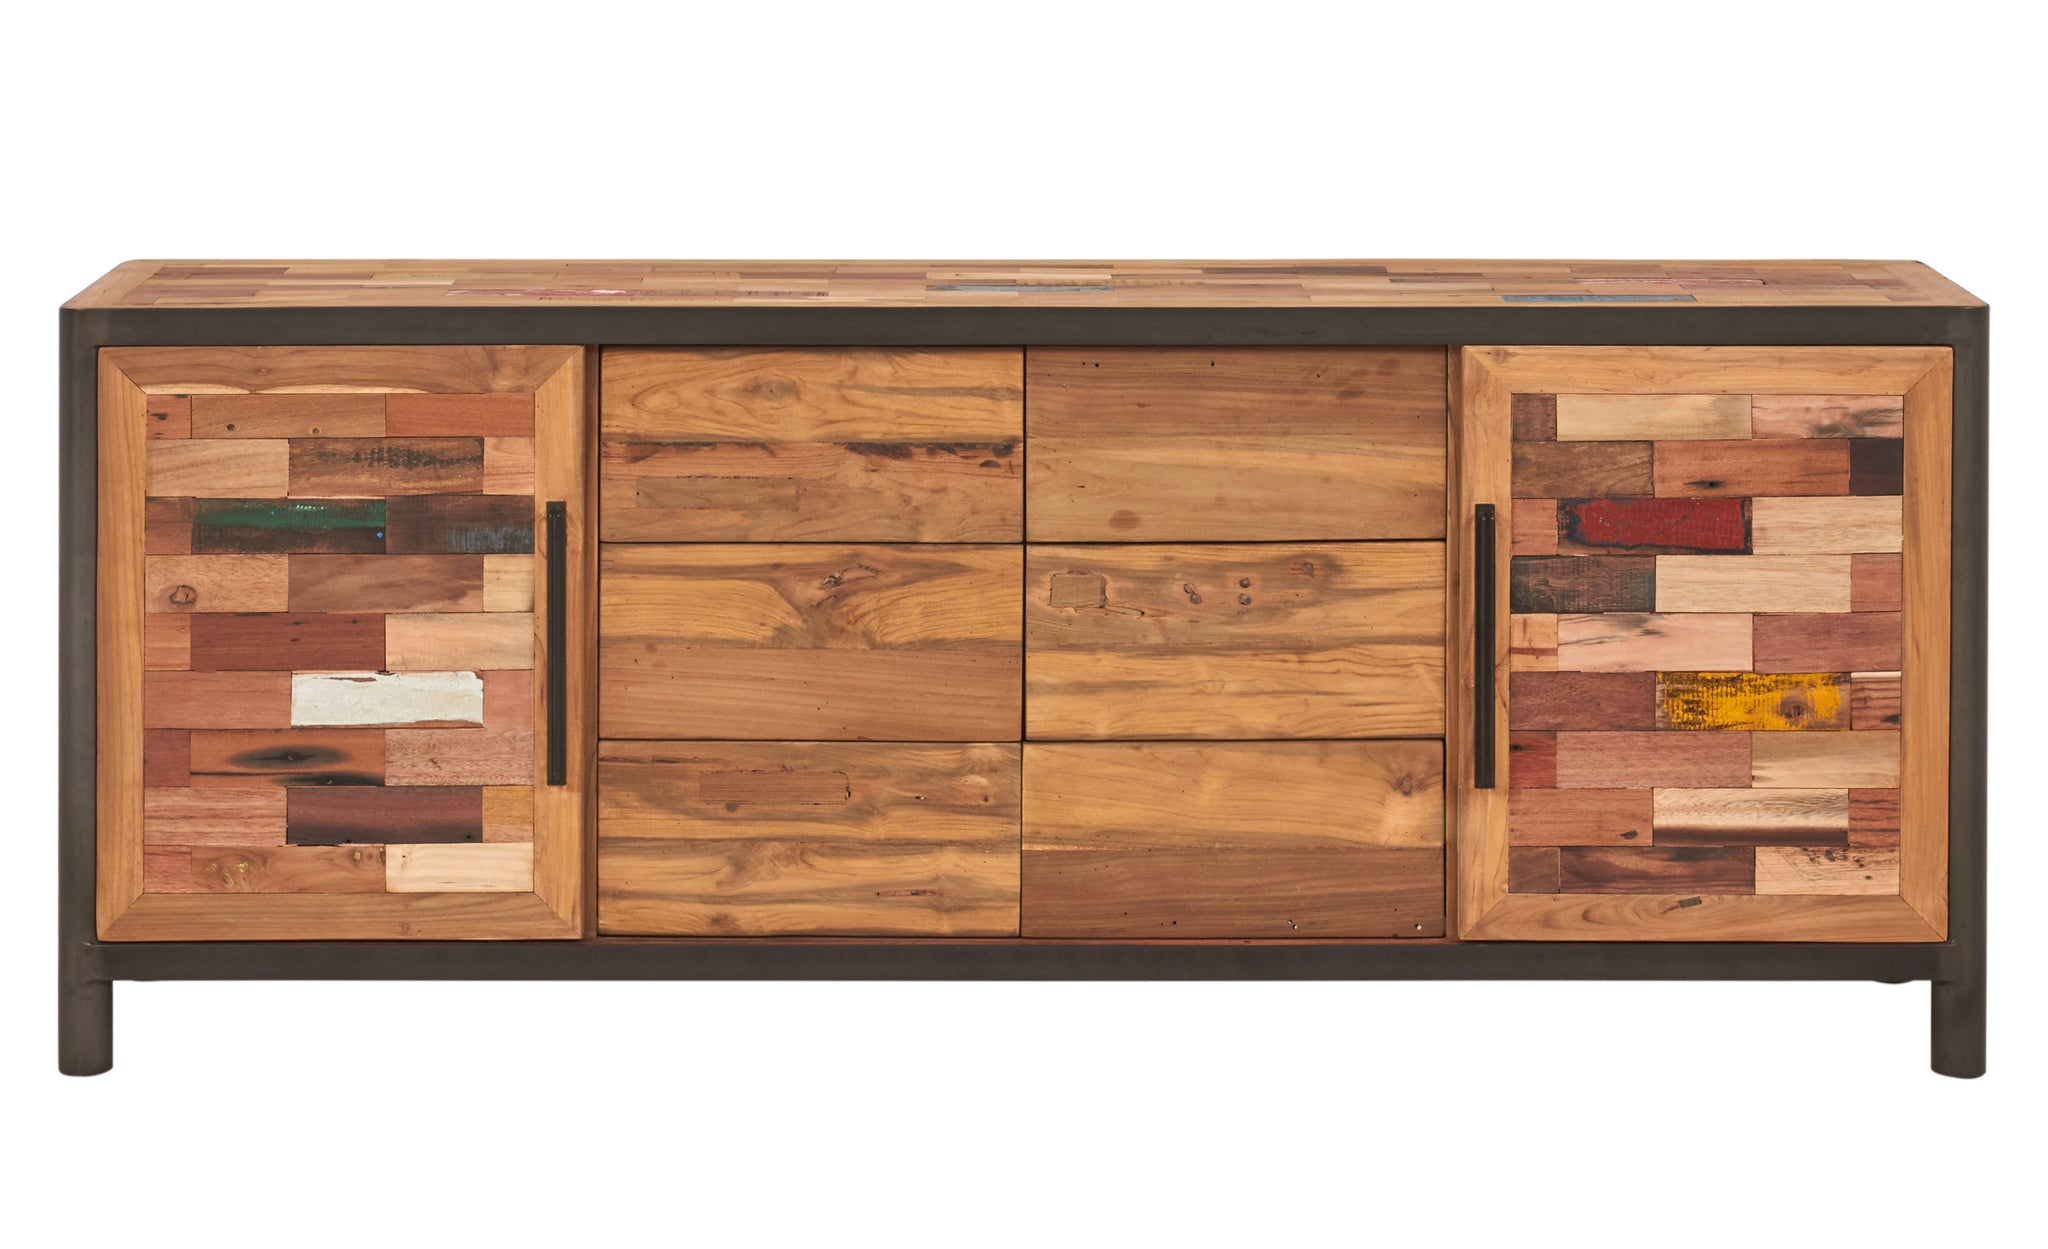 Modern Salvaged Wood & Steel Buffet, 2 Sliding Doors, 6 Drawers - OCEAN Collection - Impact Imports